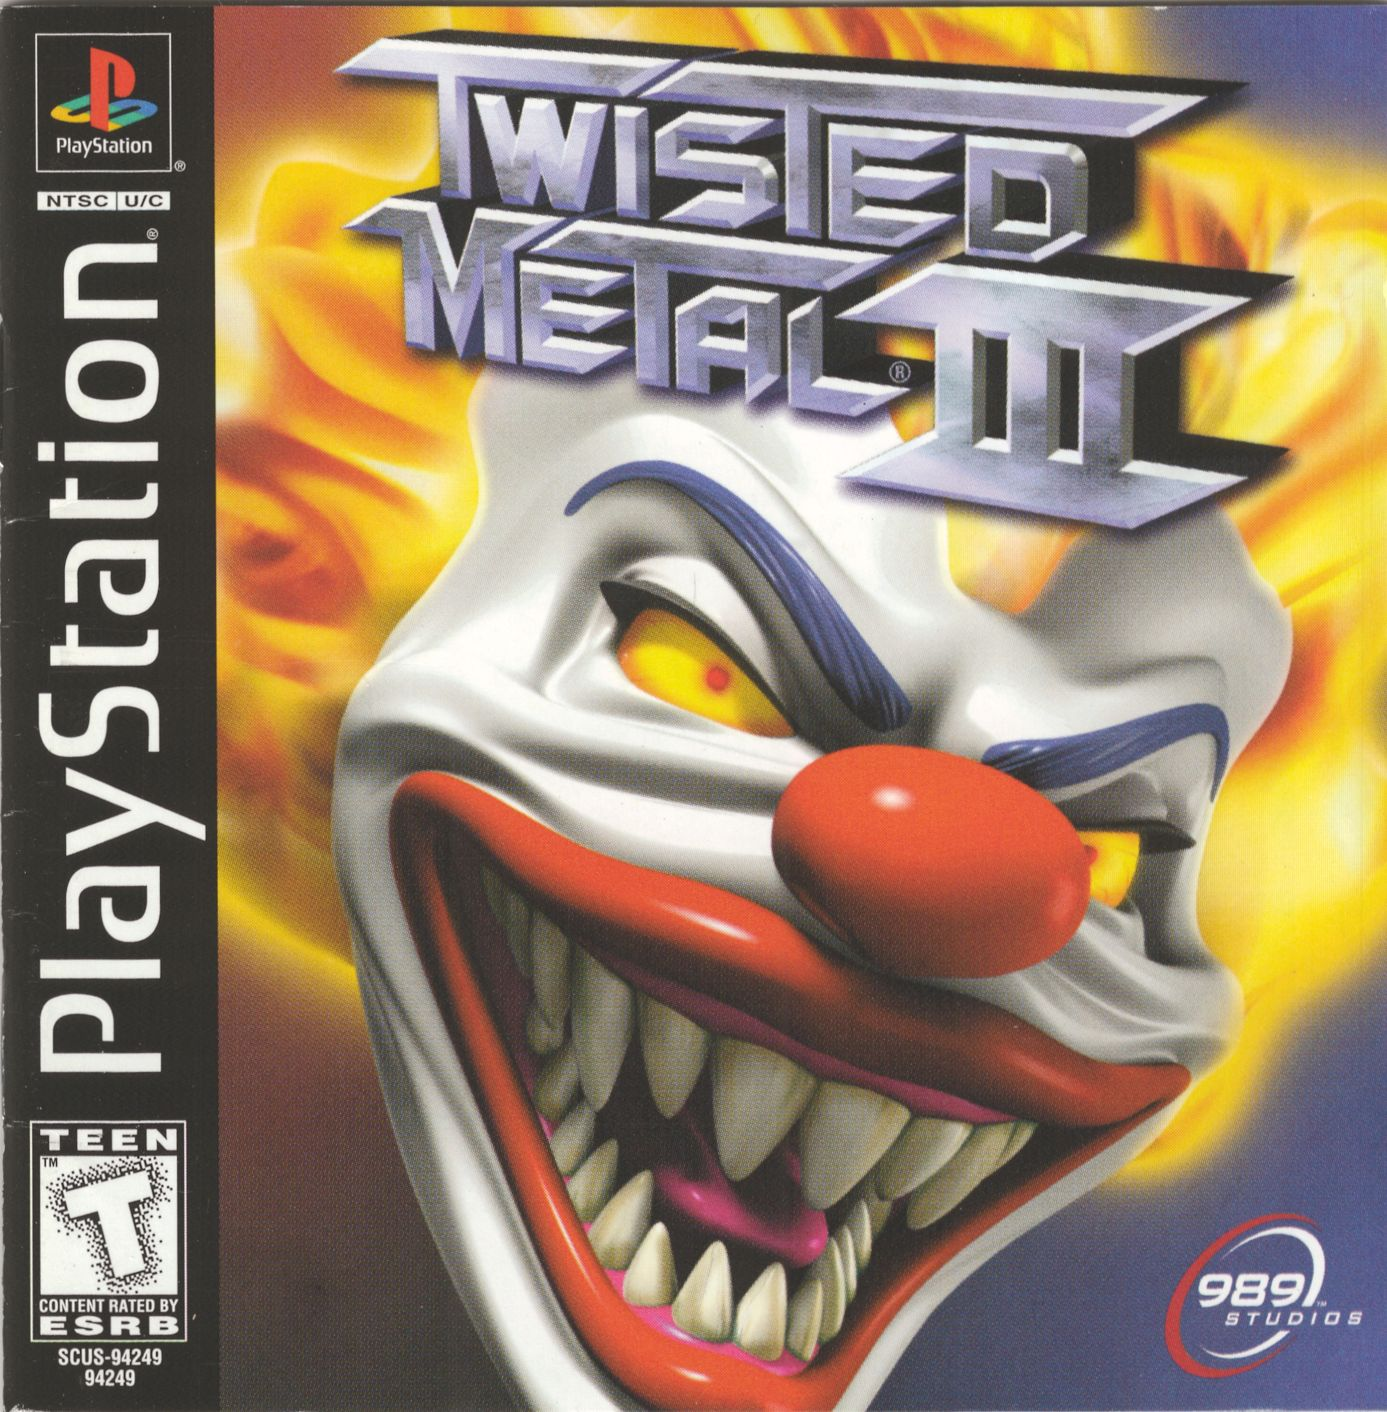 Twisted Metal 3 [SCUS-94249] ROM - Playstation (PS1